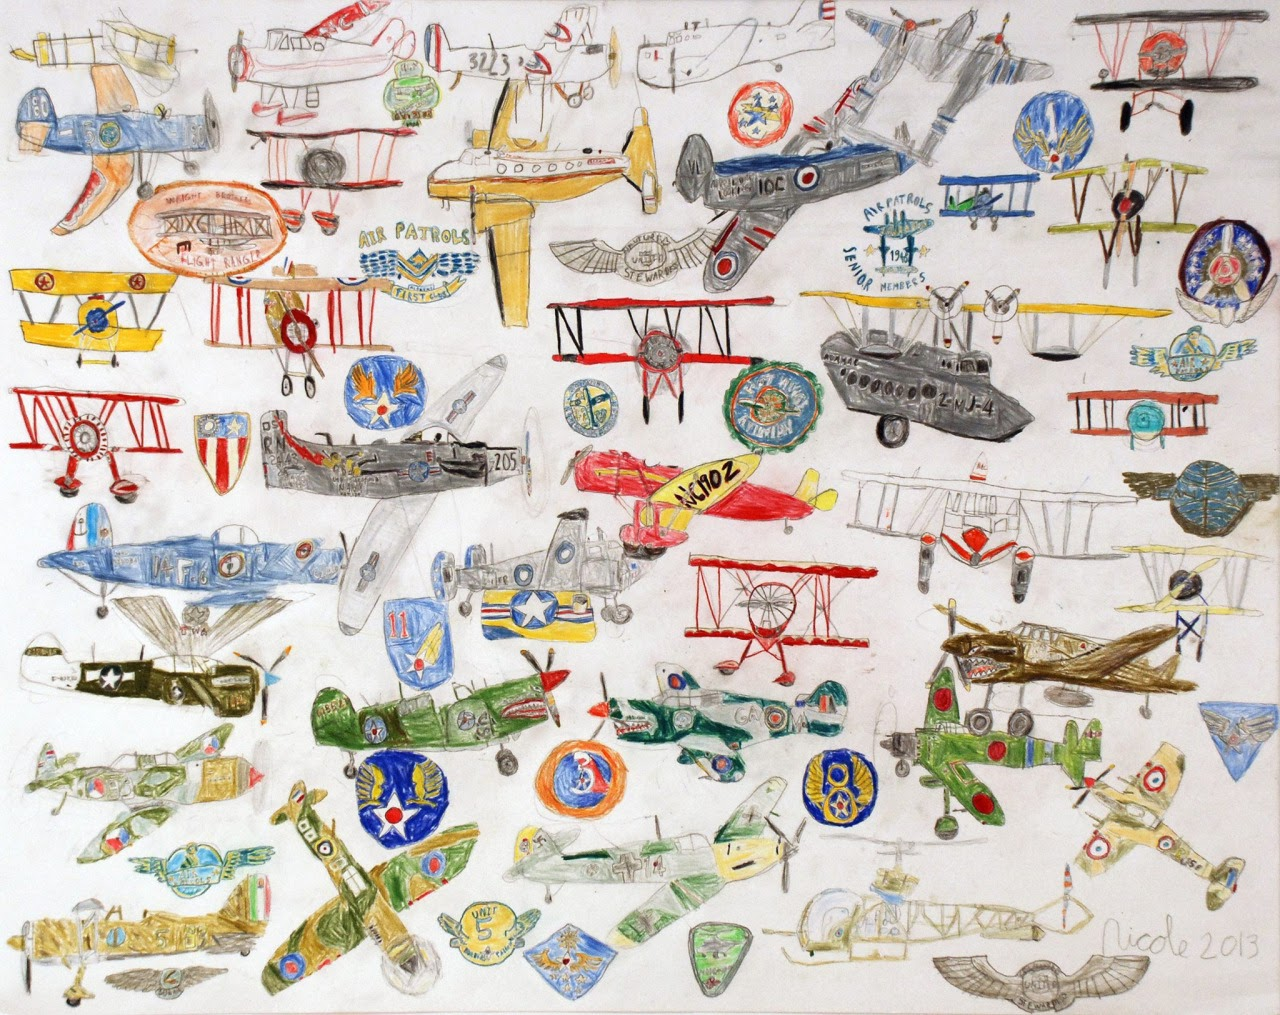 Vintage Airplanes    2013   Pencil on Paper   19x24